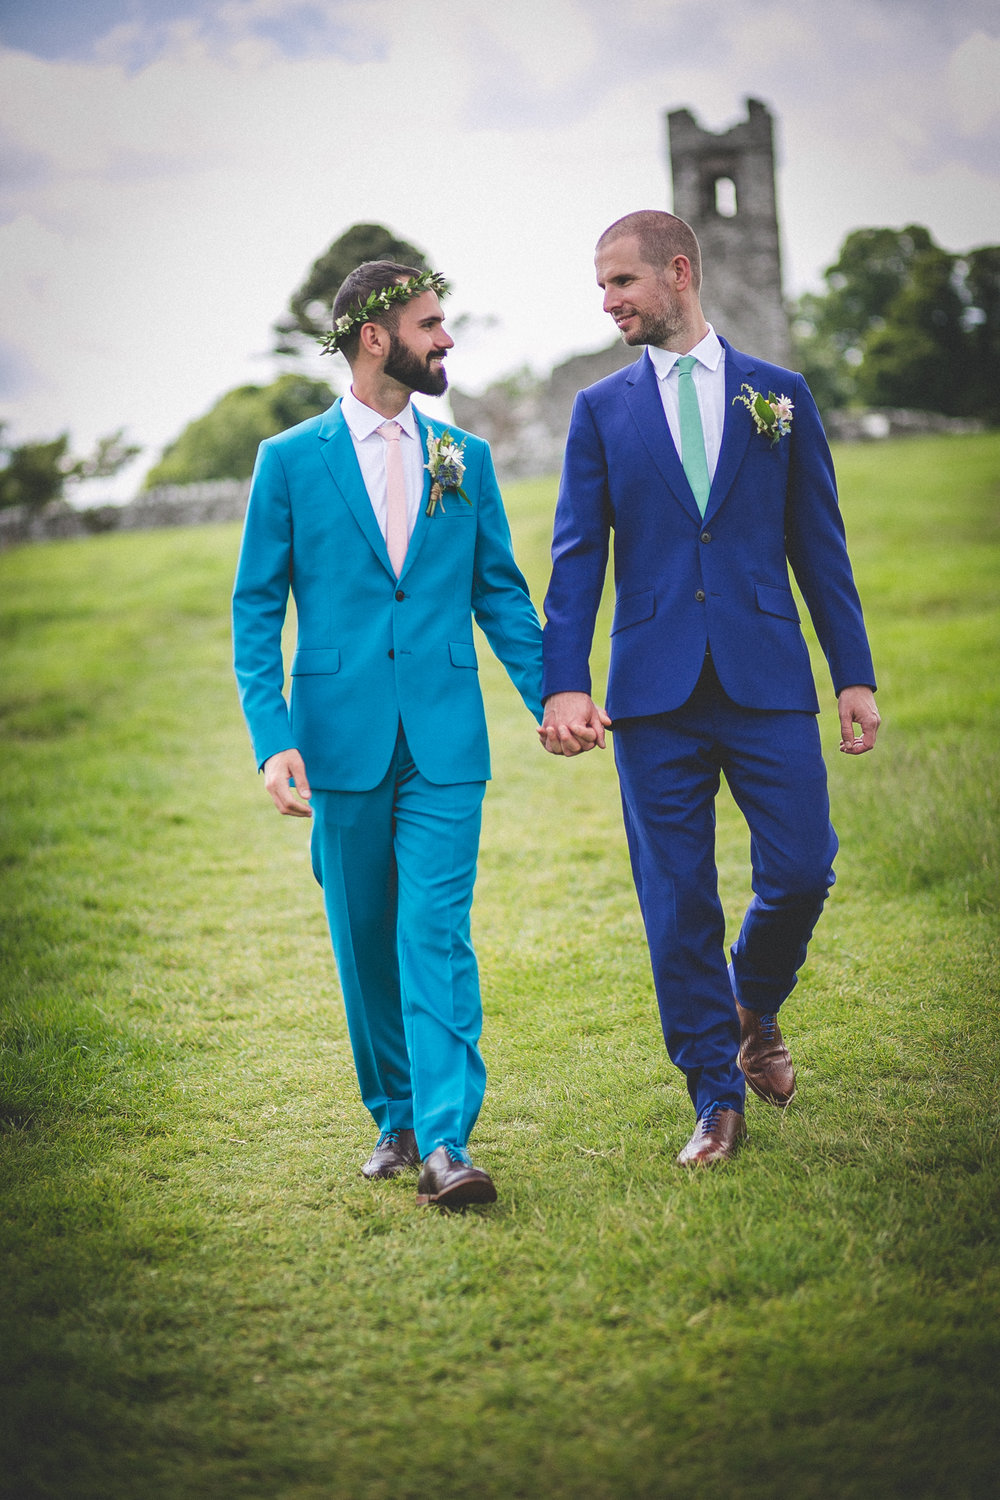 Gay weddings Ireland Millhouse-61.jpg